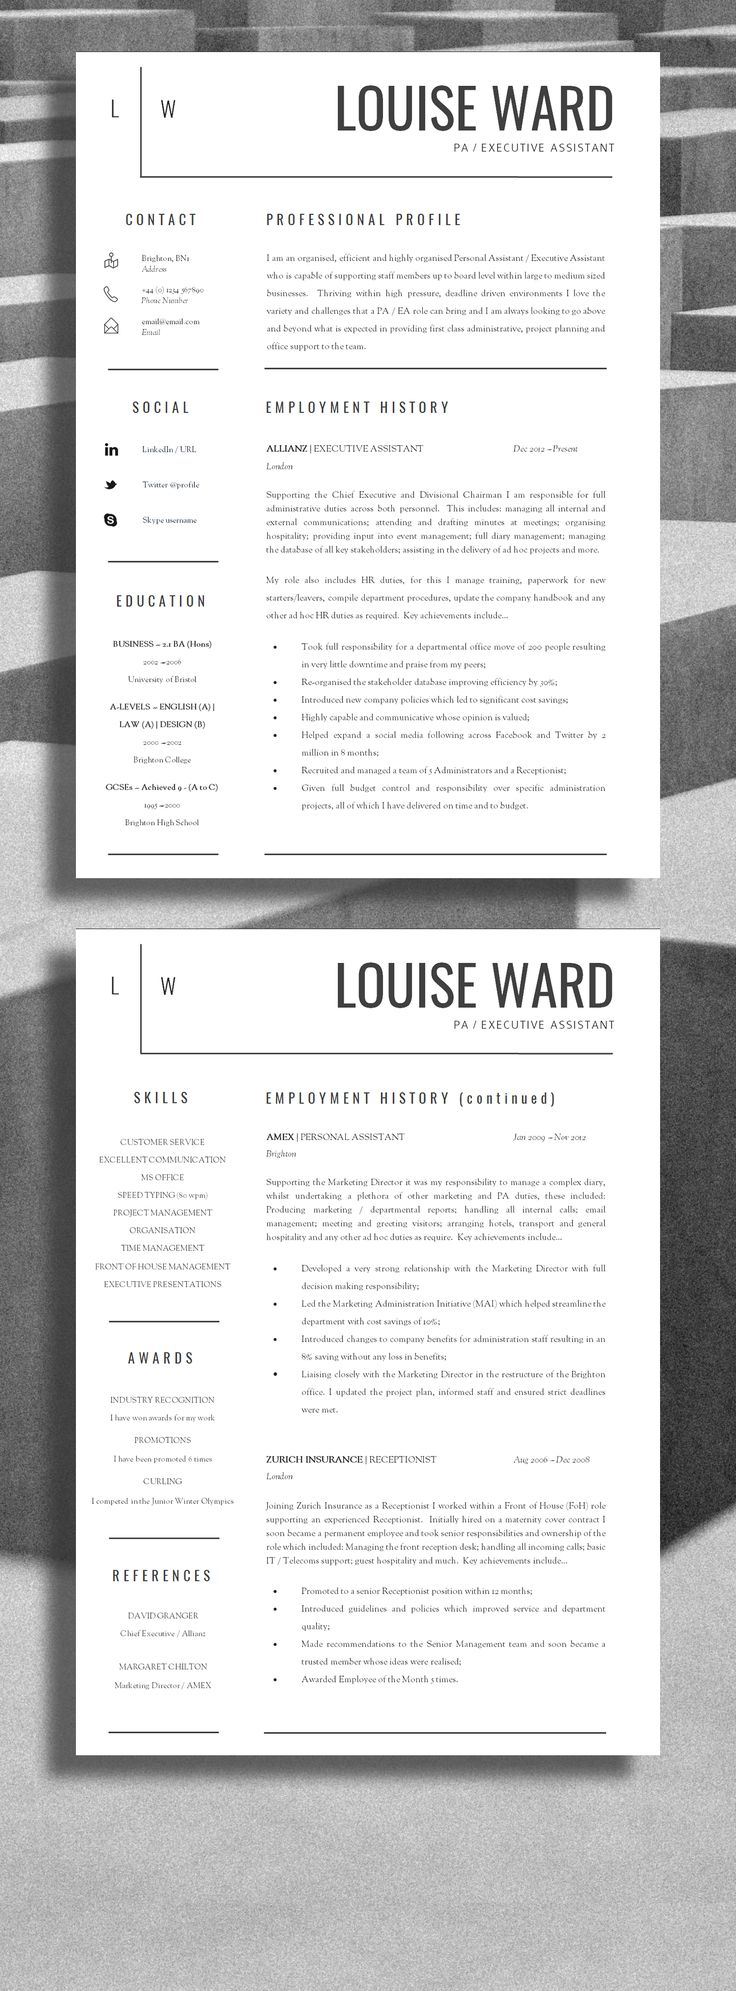 professional resume design professional cv design be professional and get more interviews career. Resume Example. Resume CV Cover Letter